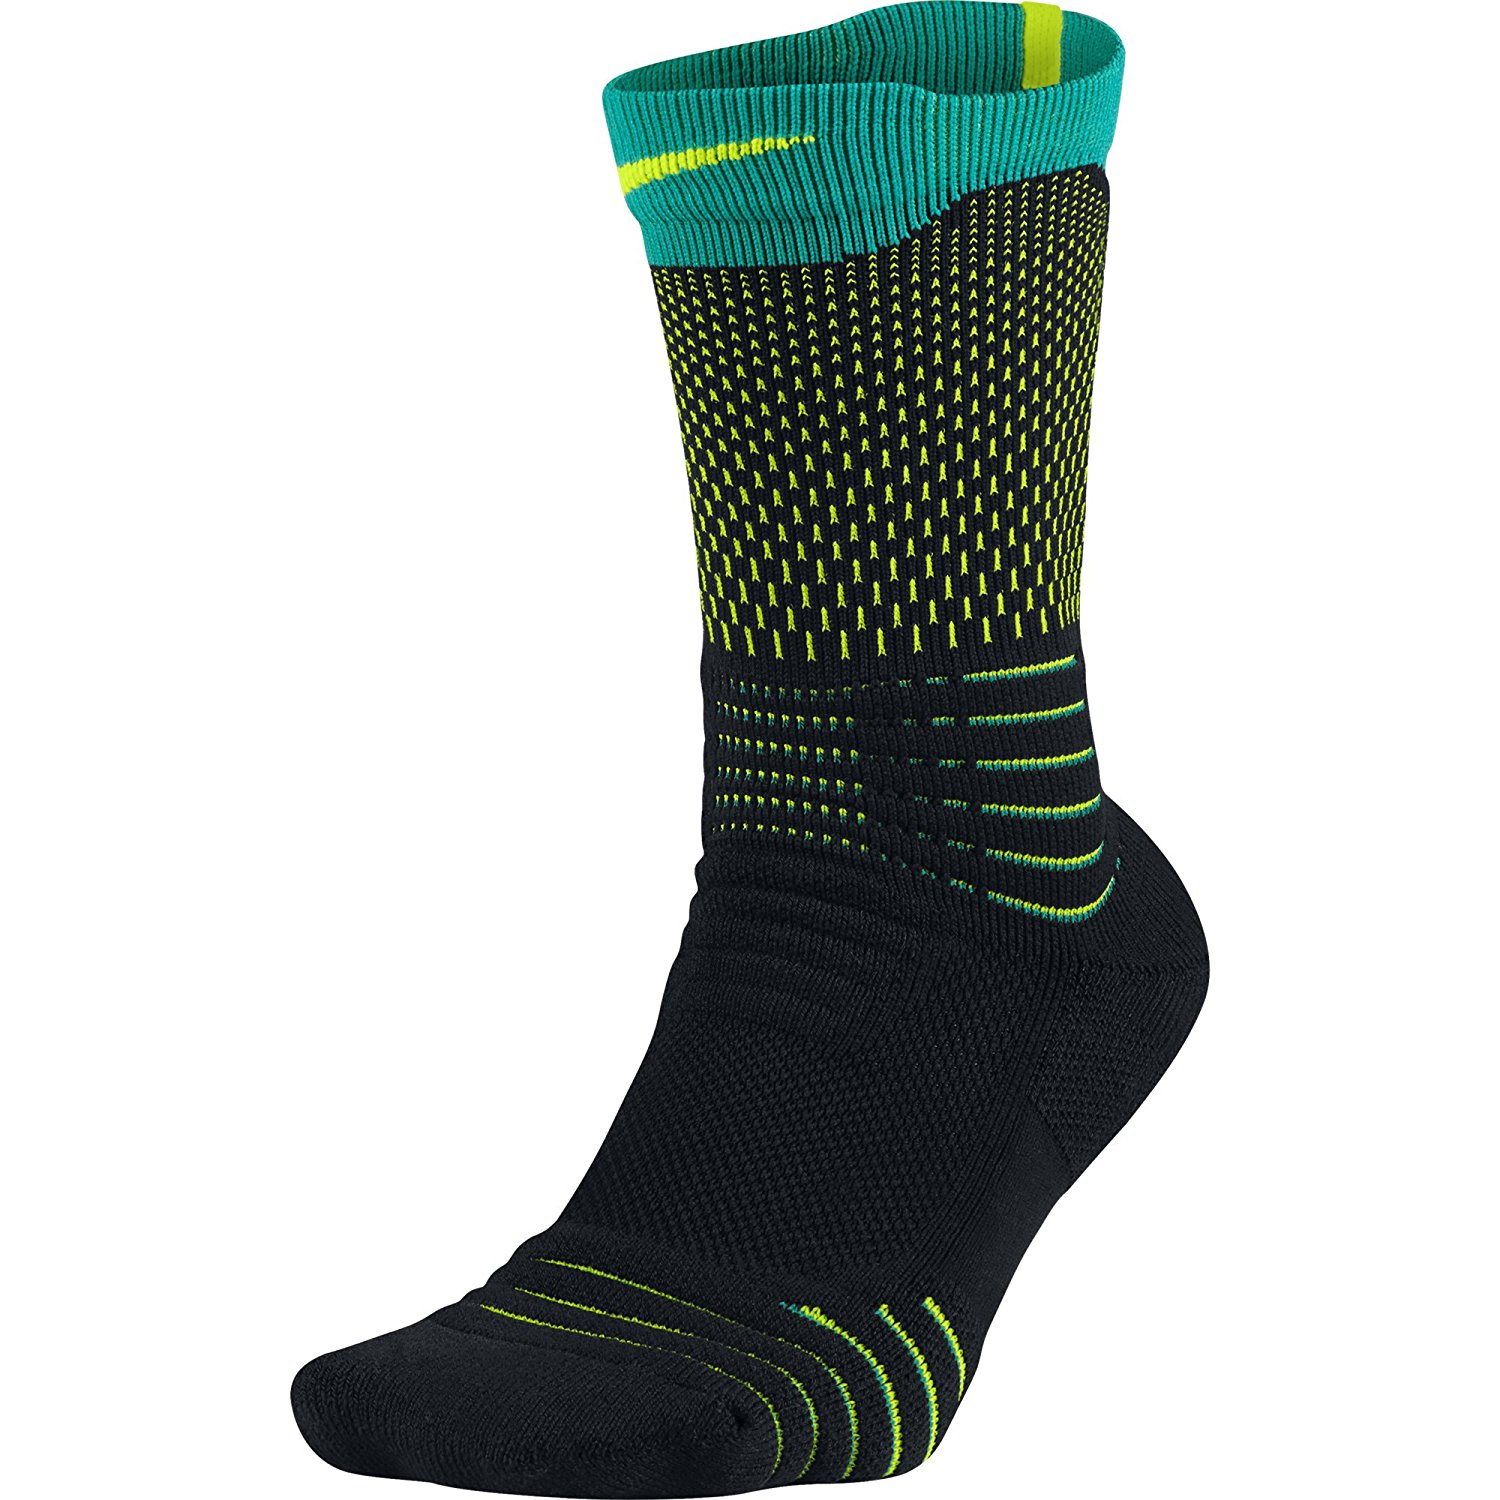 1e6434b0c88a Get Quotations · Nike Mens Elite Versatility Crew Basketball Socks Black Rio  Teal Volt Large (Mens